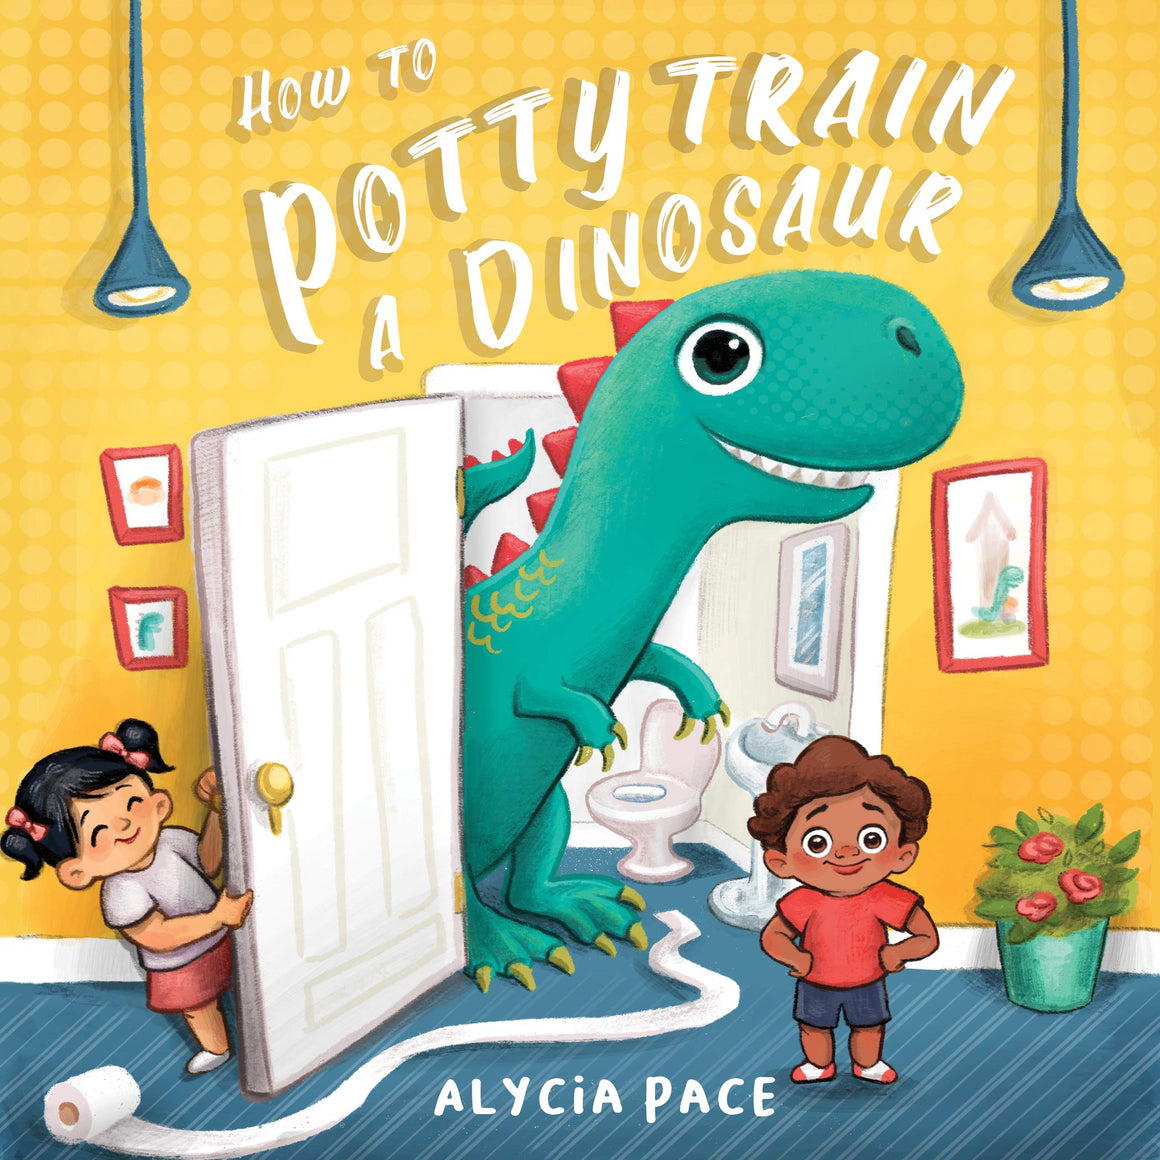 How To Potty Train a Dinosaur Book | by Alycia Pacl